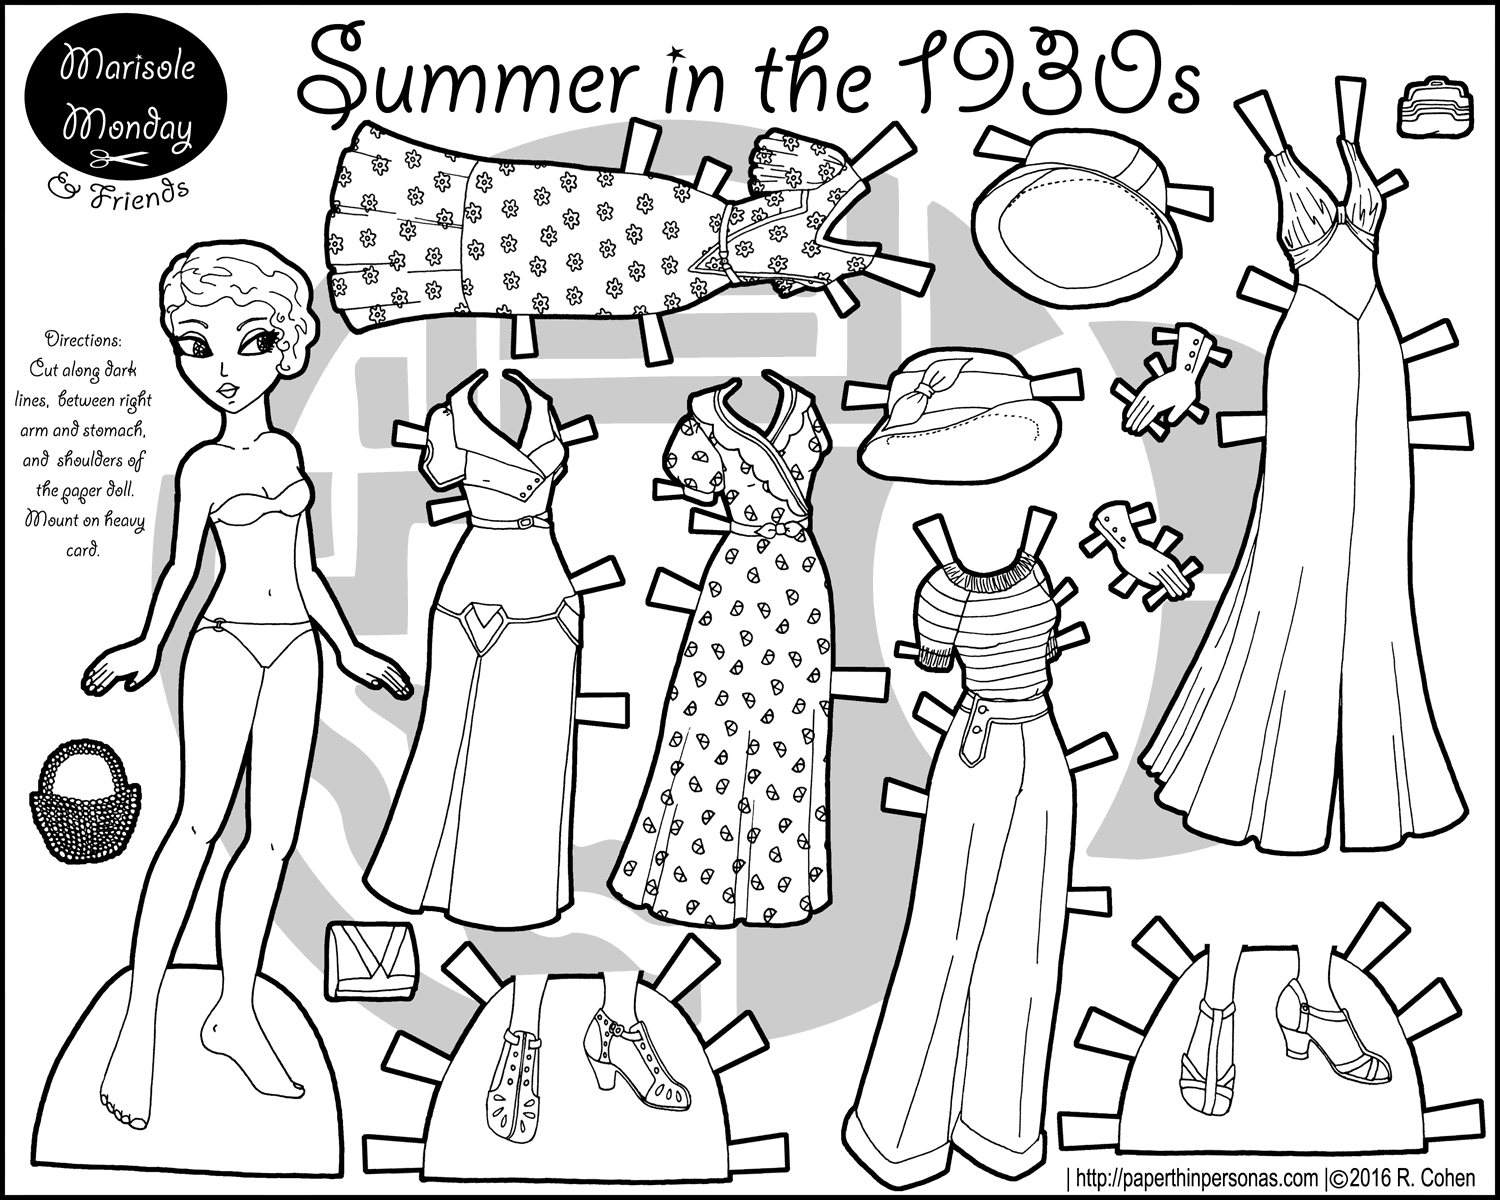 A paper doll coloring page celebrating the 1930s with a five piece